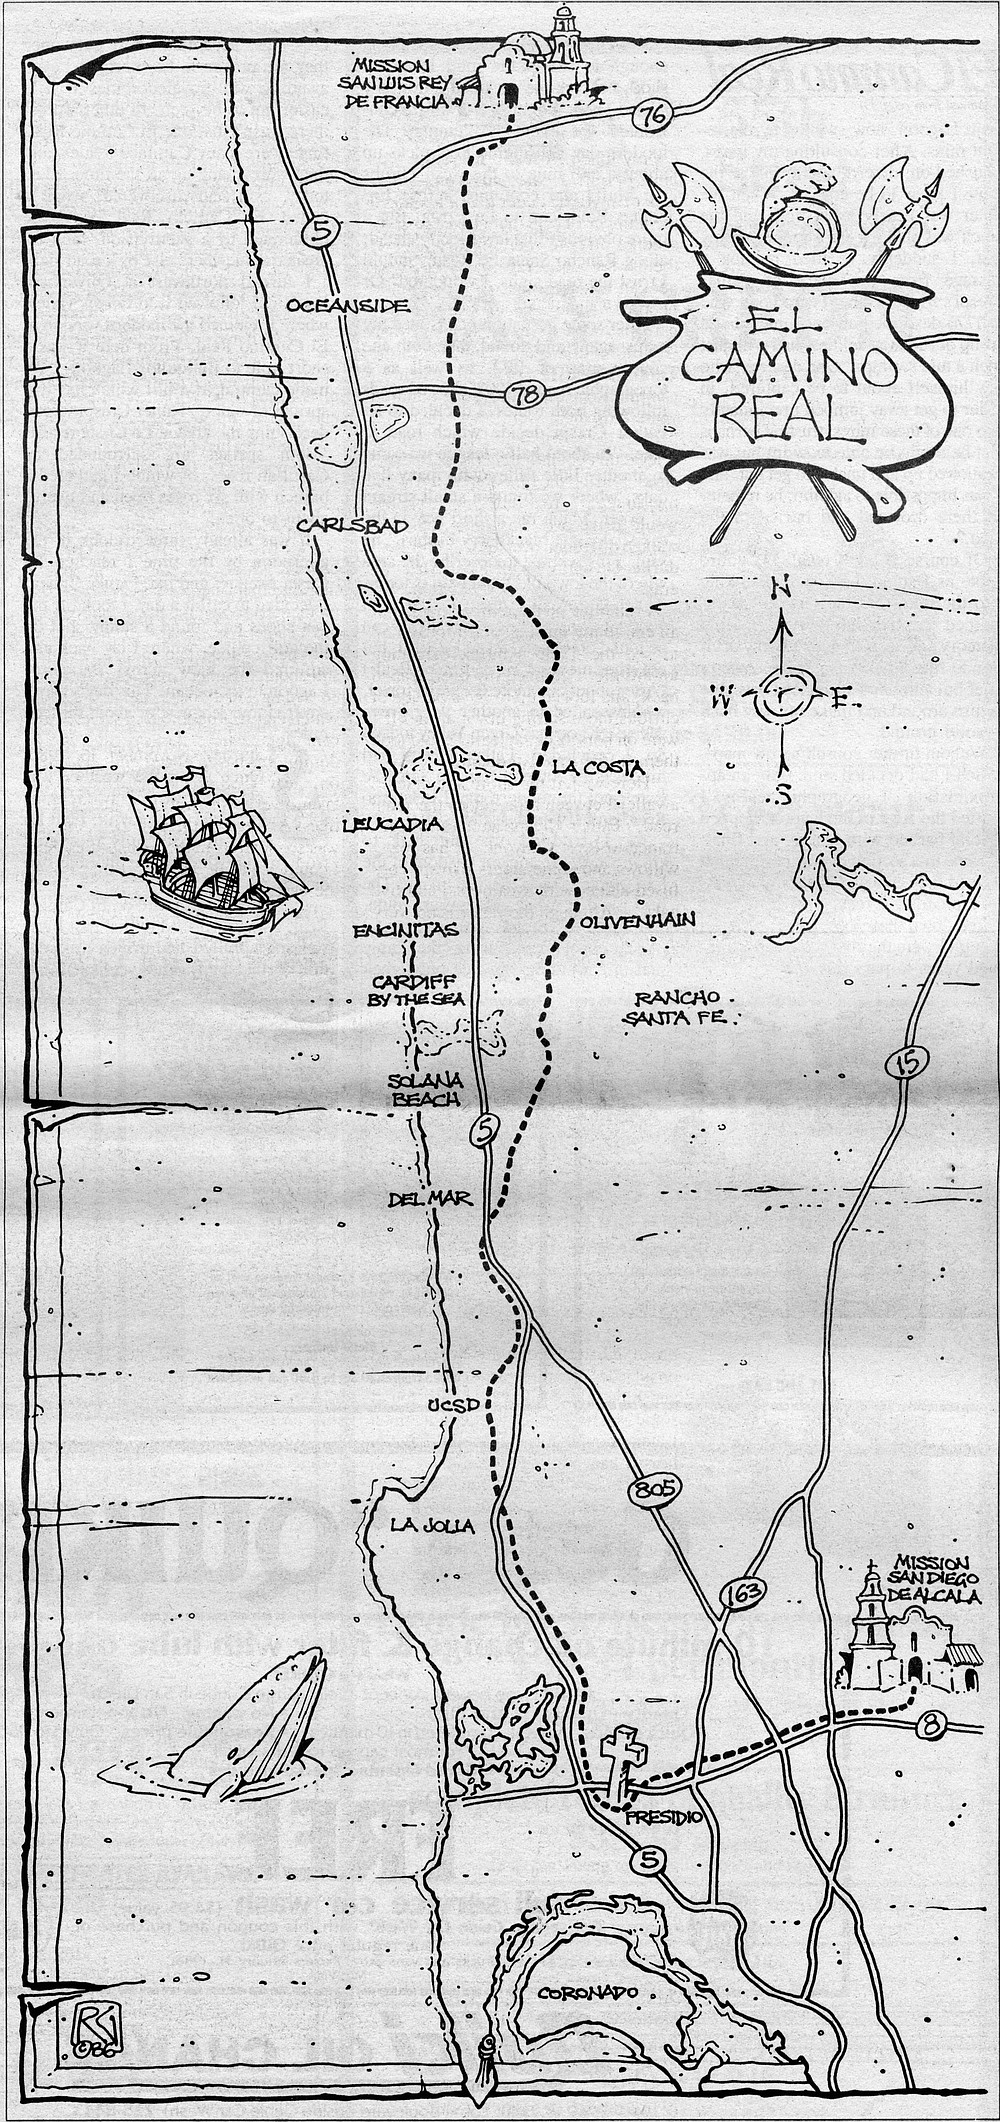 I was relying on a San Diego County survey map of 1872 (on which El Camino Real is shown as nothing but a foot trail), on the advice of several old-timers whose memories of the route predate most of the county's freeways and subdivisions, and upon the diary of Father Juan Crespi.